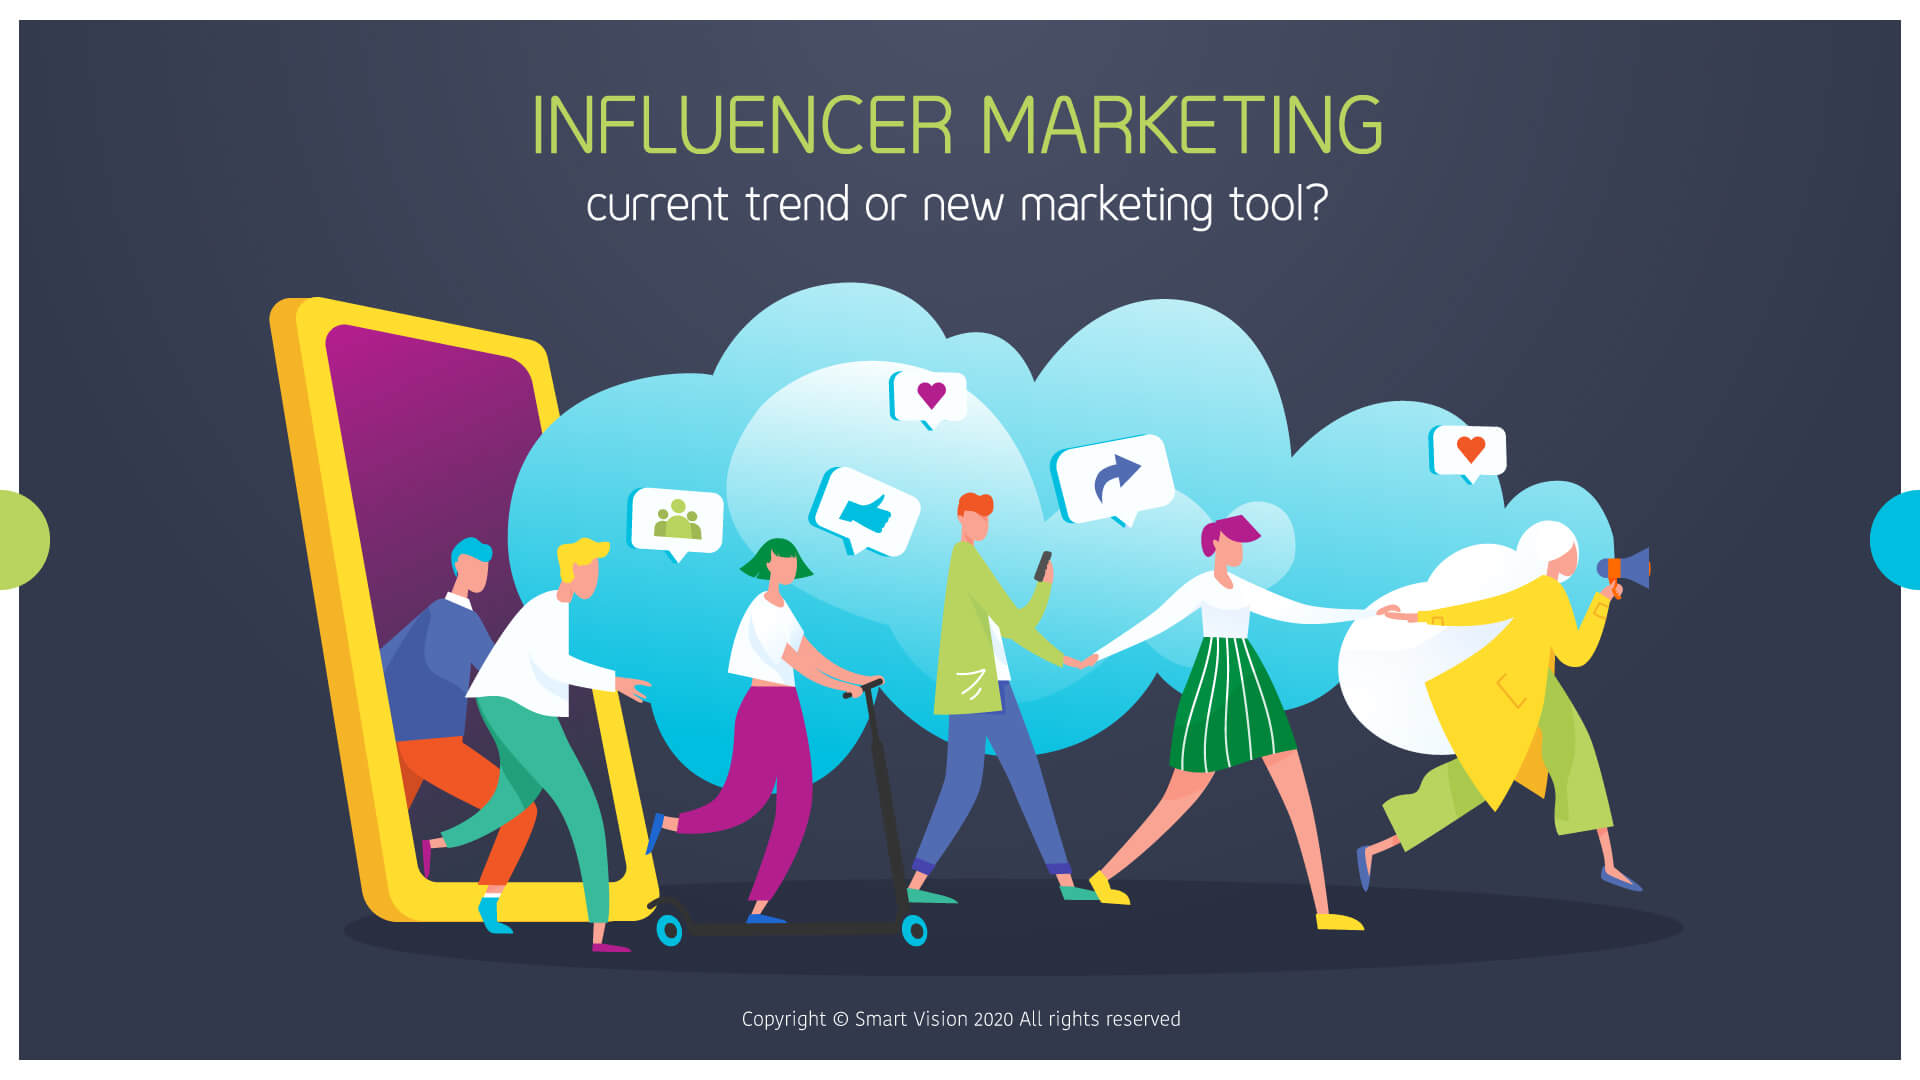 Smart Vision blog - INFLUENCER MARKETING - current trend or new marketing tool